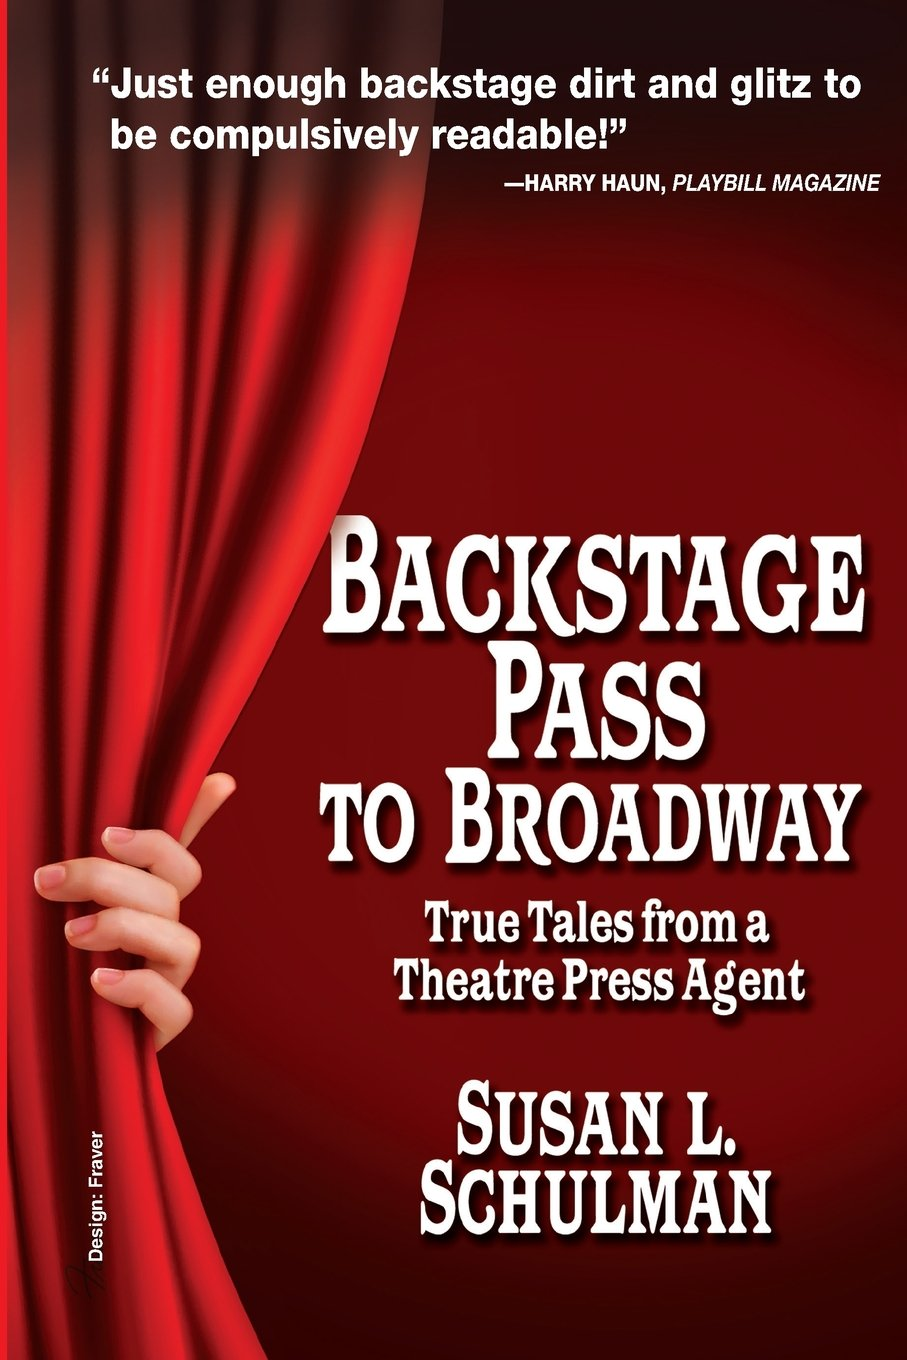 Backstage Pass to Broadway: True Tales from a Theatre Press